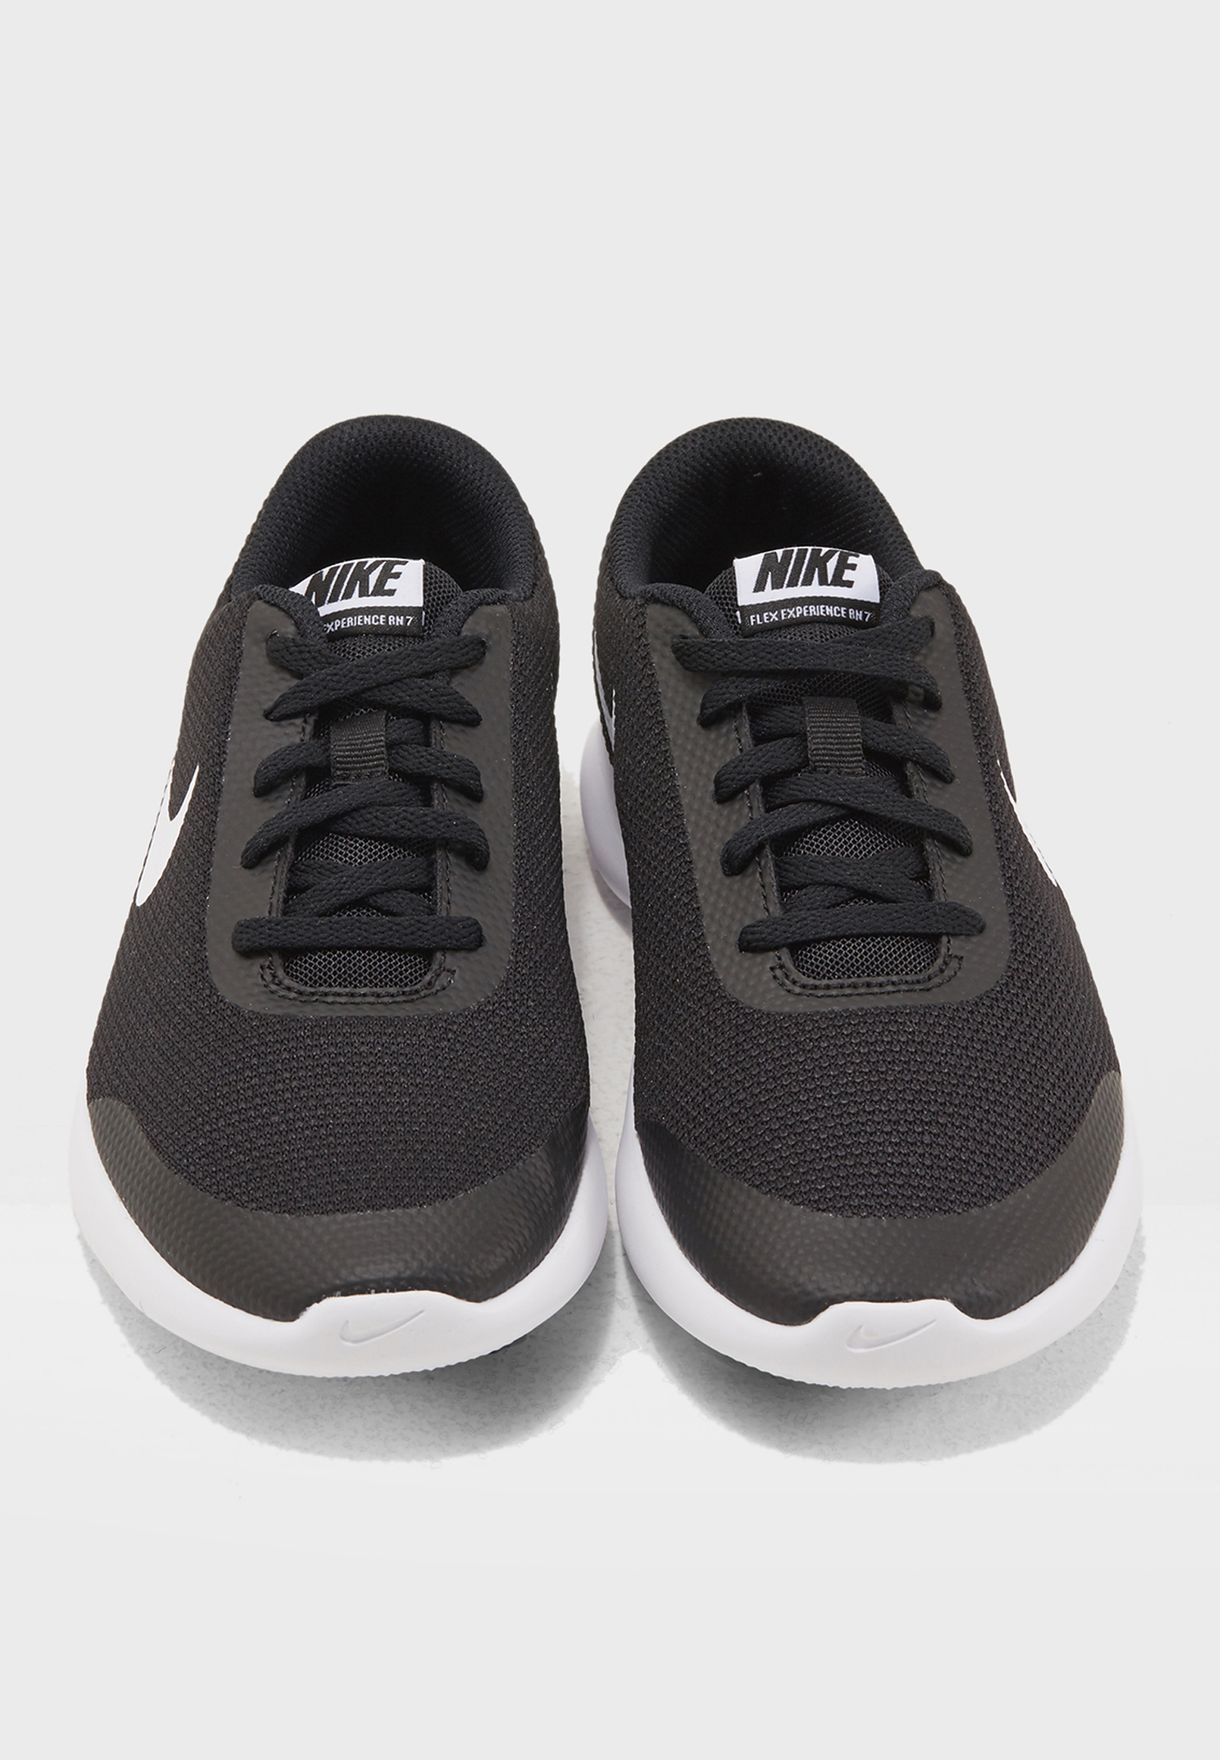 5ab6ba839d98 Shop Nike black Flex Experience RN 7 Youth 943284-001 for Kids in ...